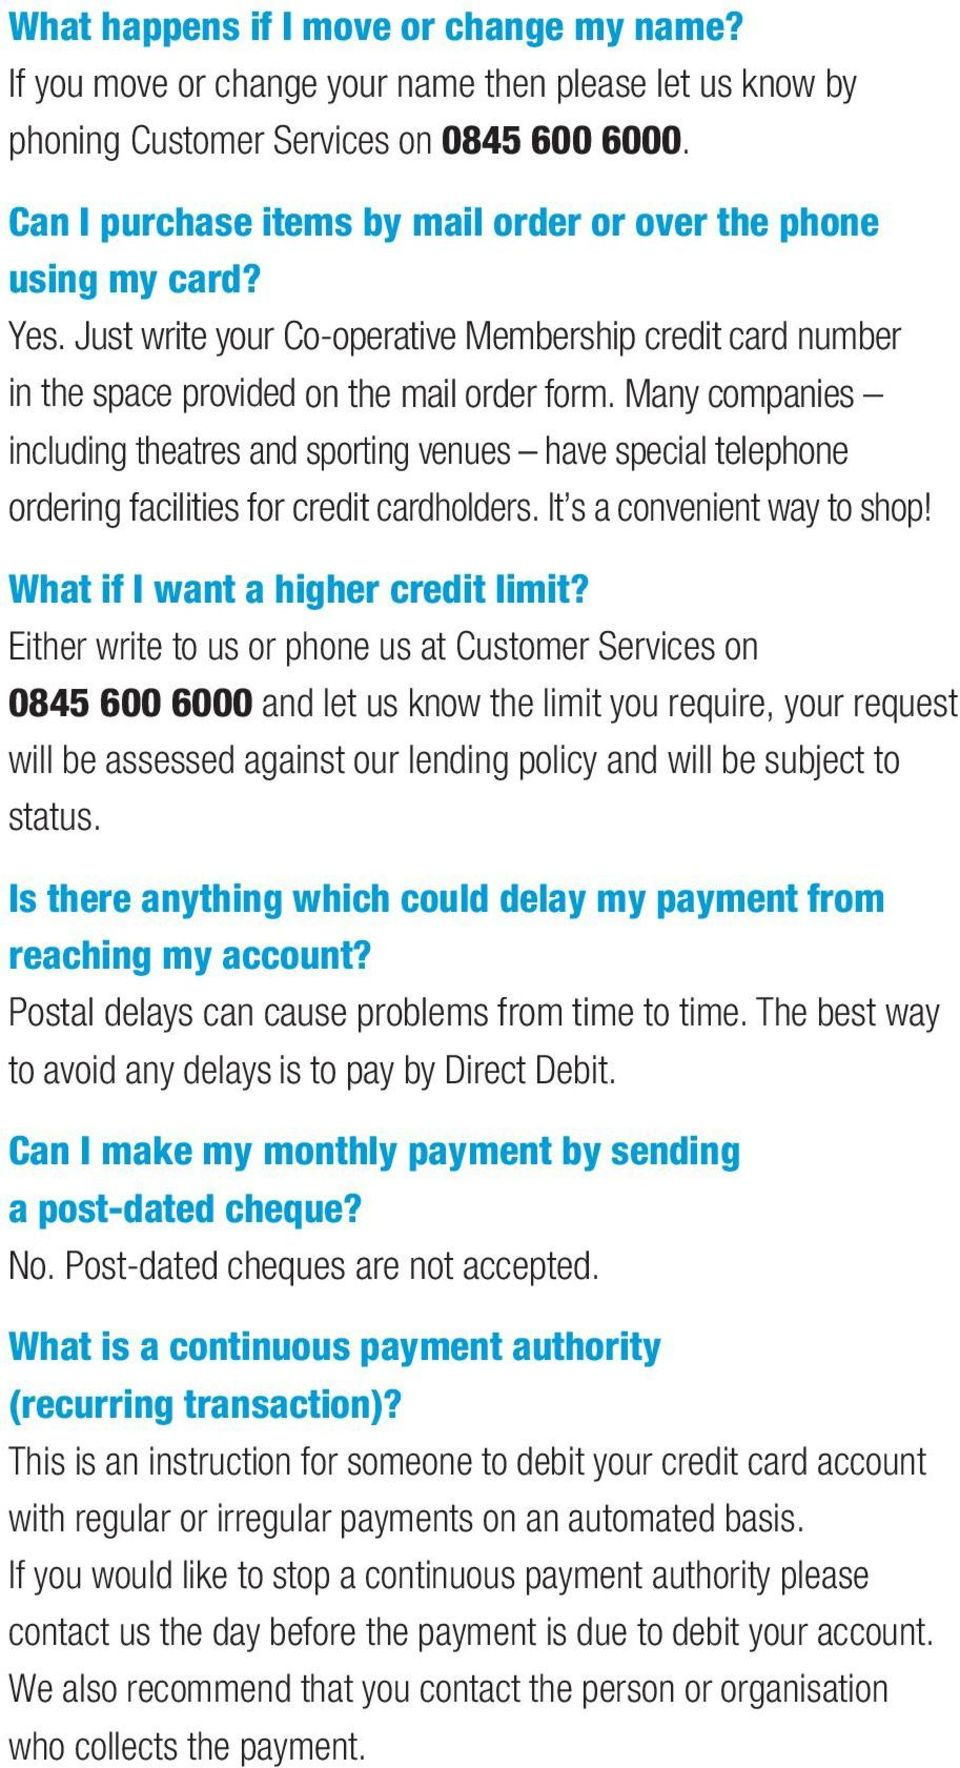 Many companies including theatres and sporting venues have special telephone ordering facilities for credit cardholders. It s a convenient way to shop! What if I want a higher credit limit?